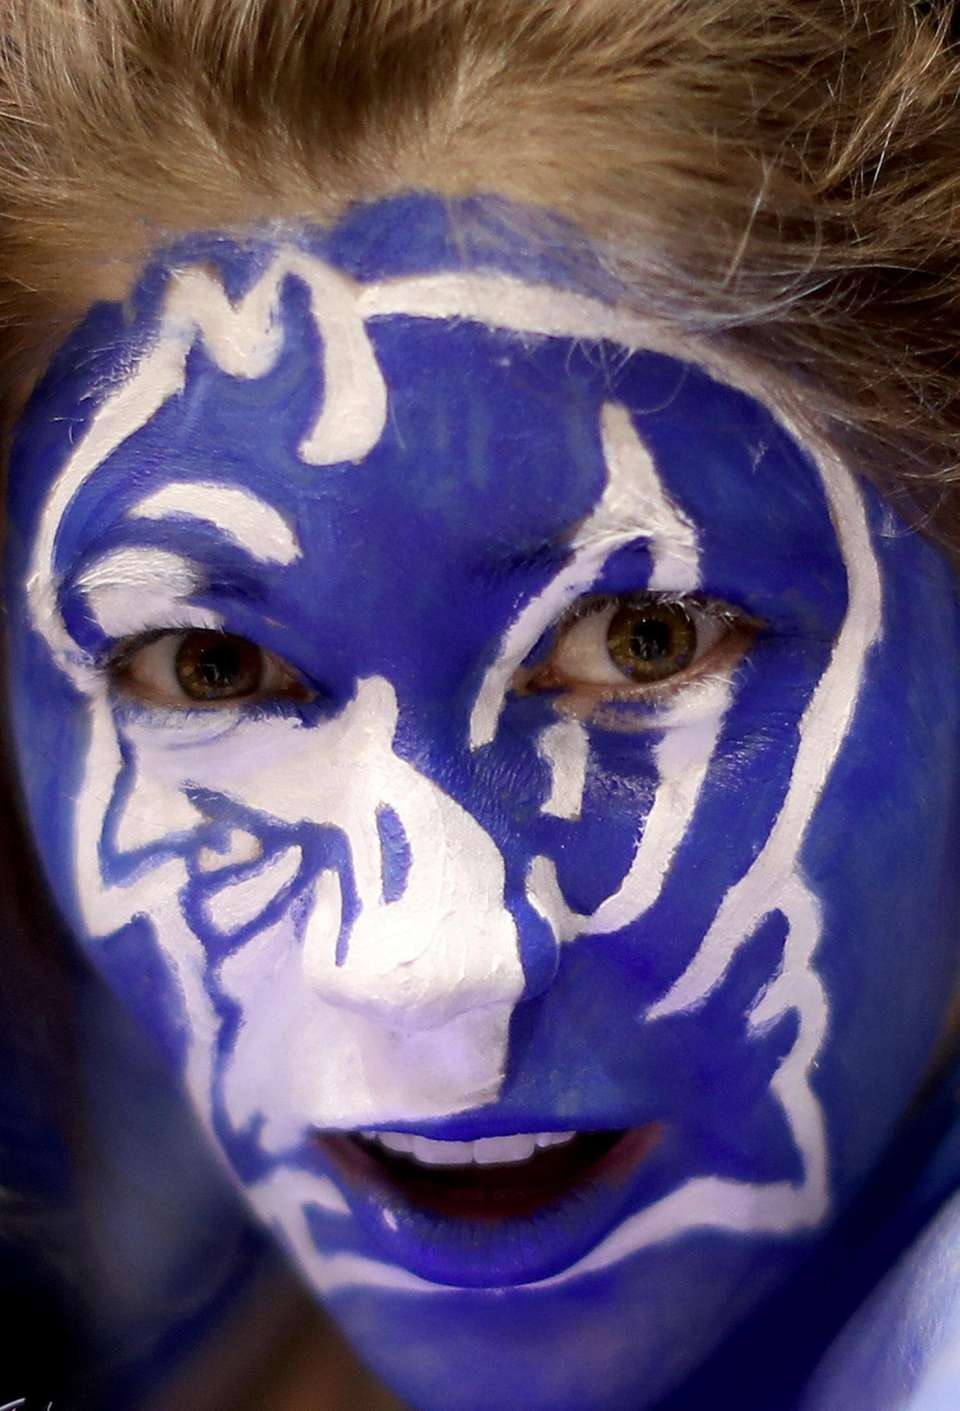 Fans of the Duke Blue Devils watch on